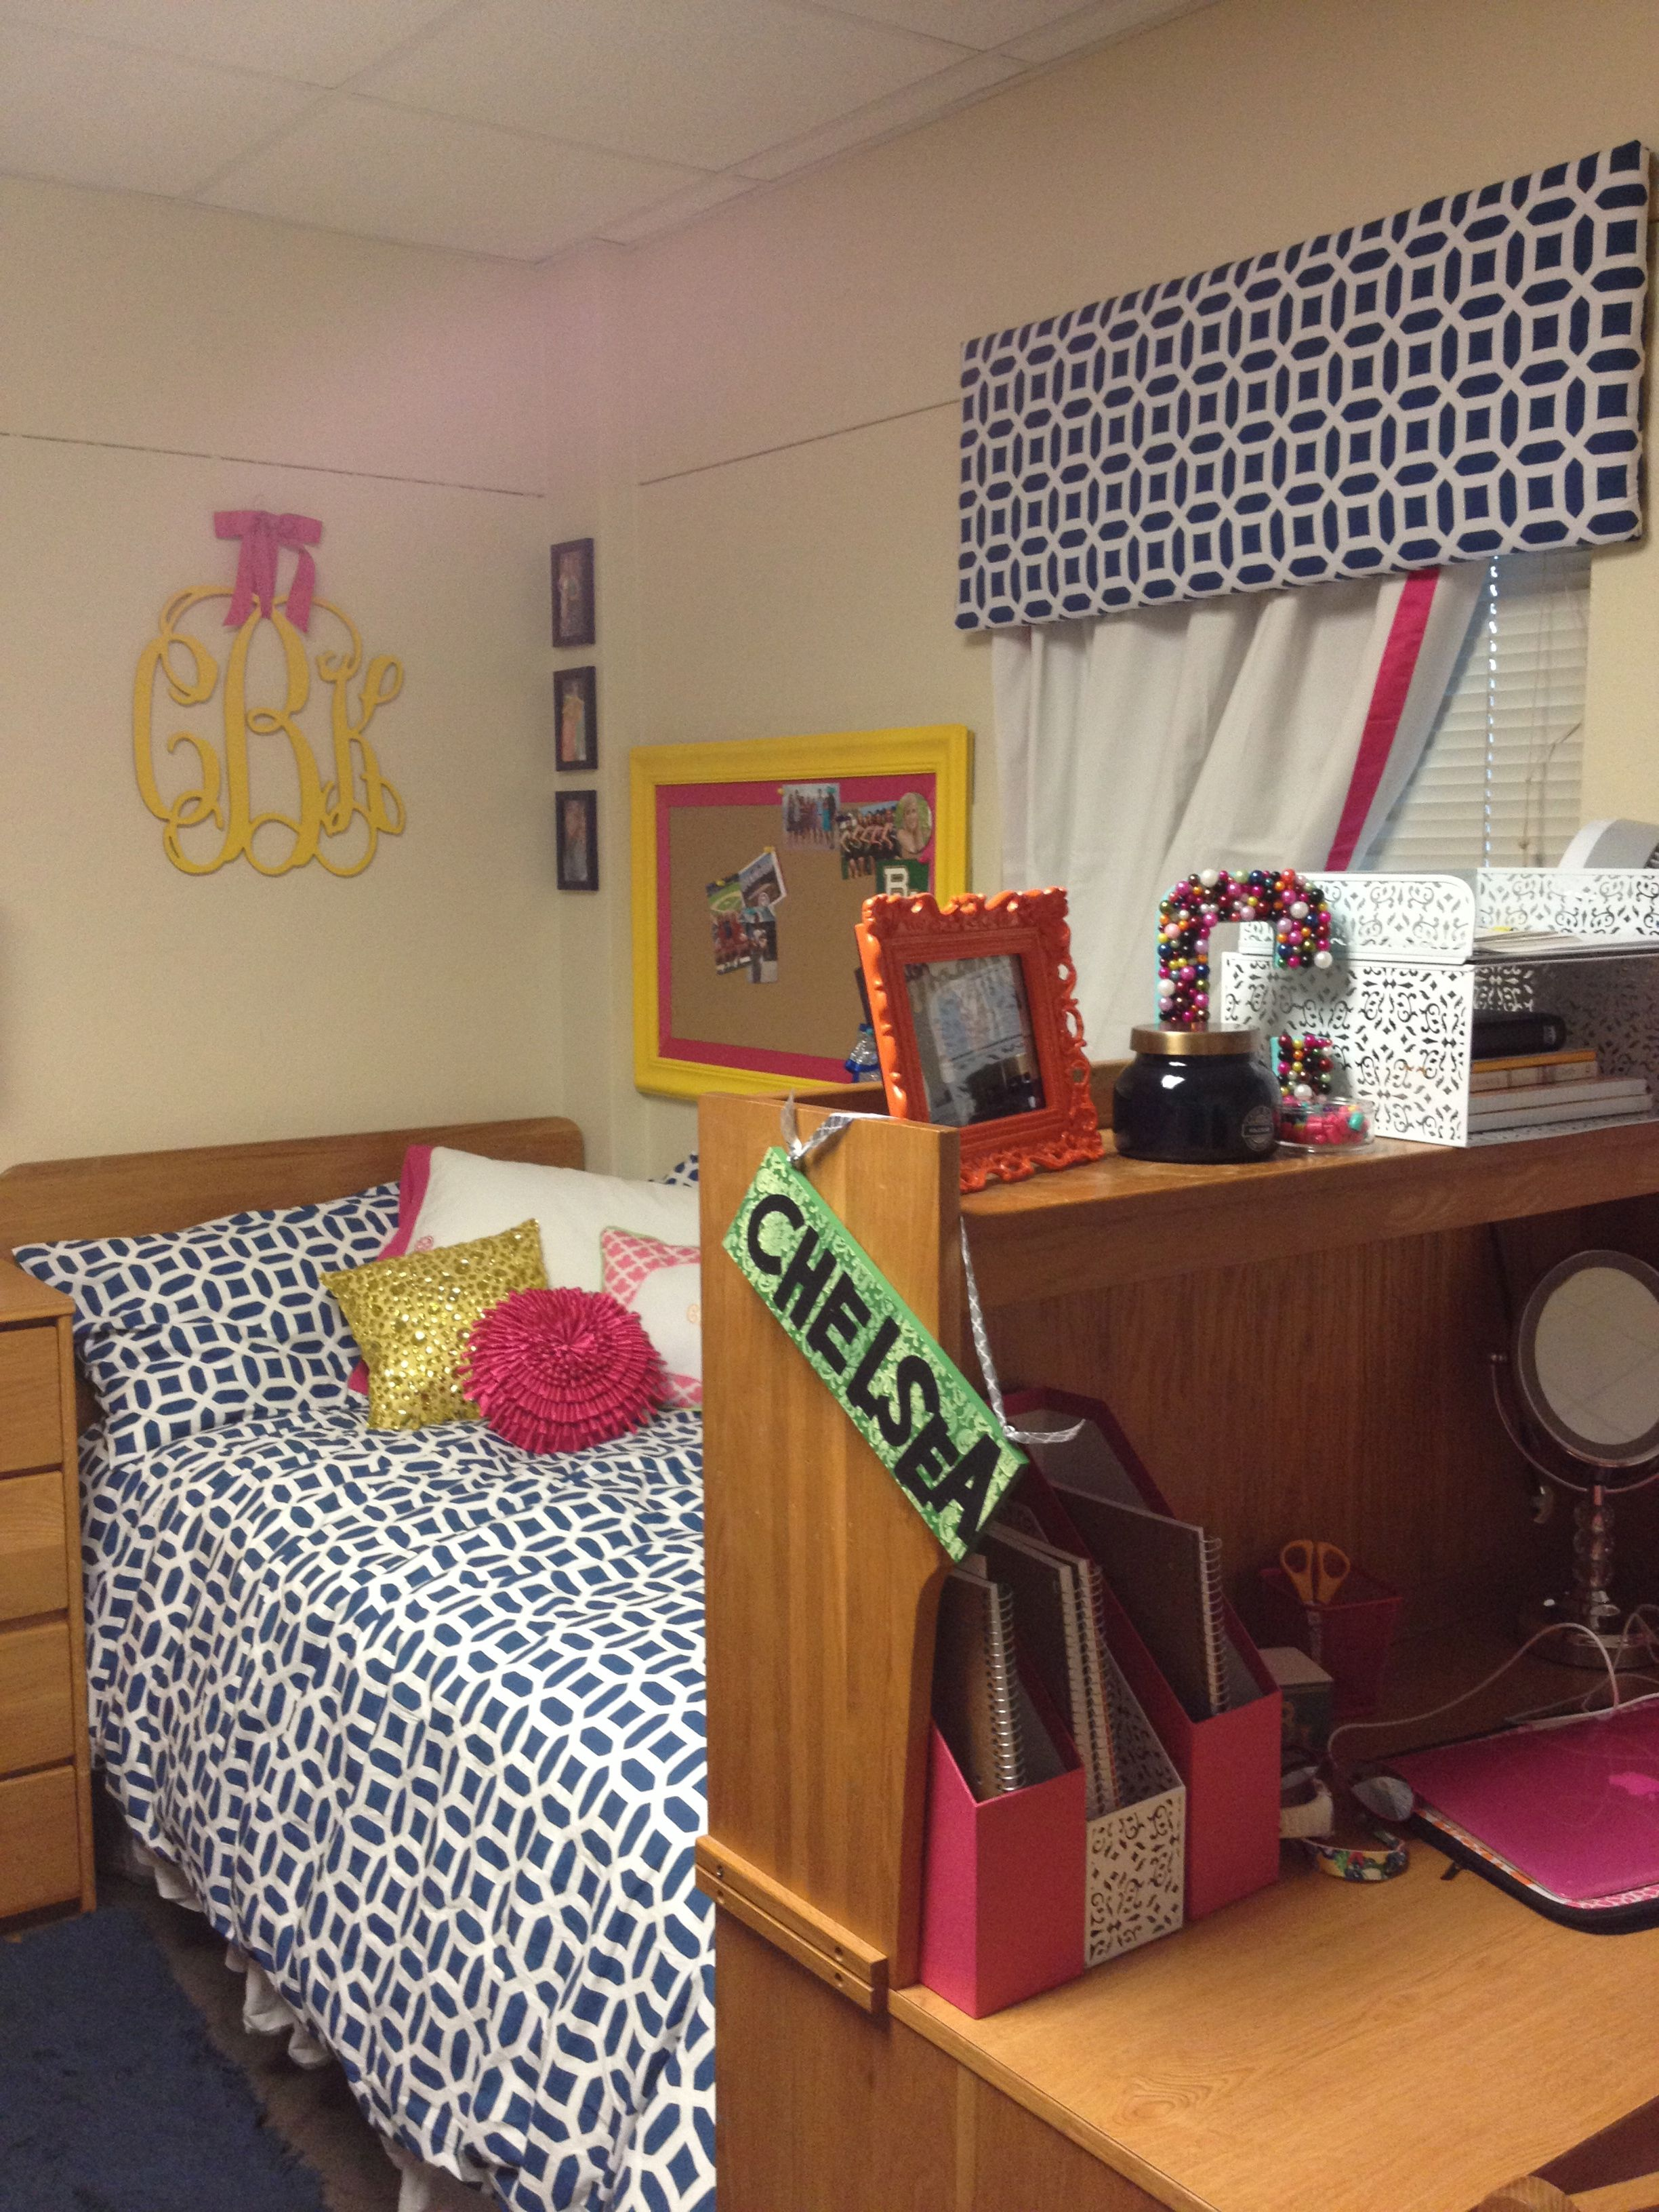 super cute dorm room! Save on your dorm decor with